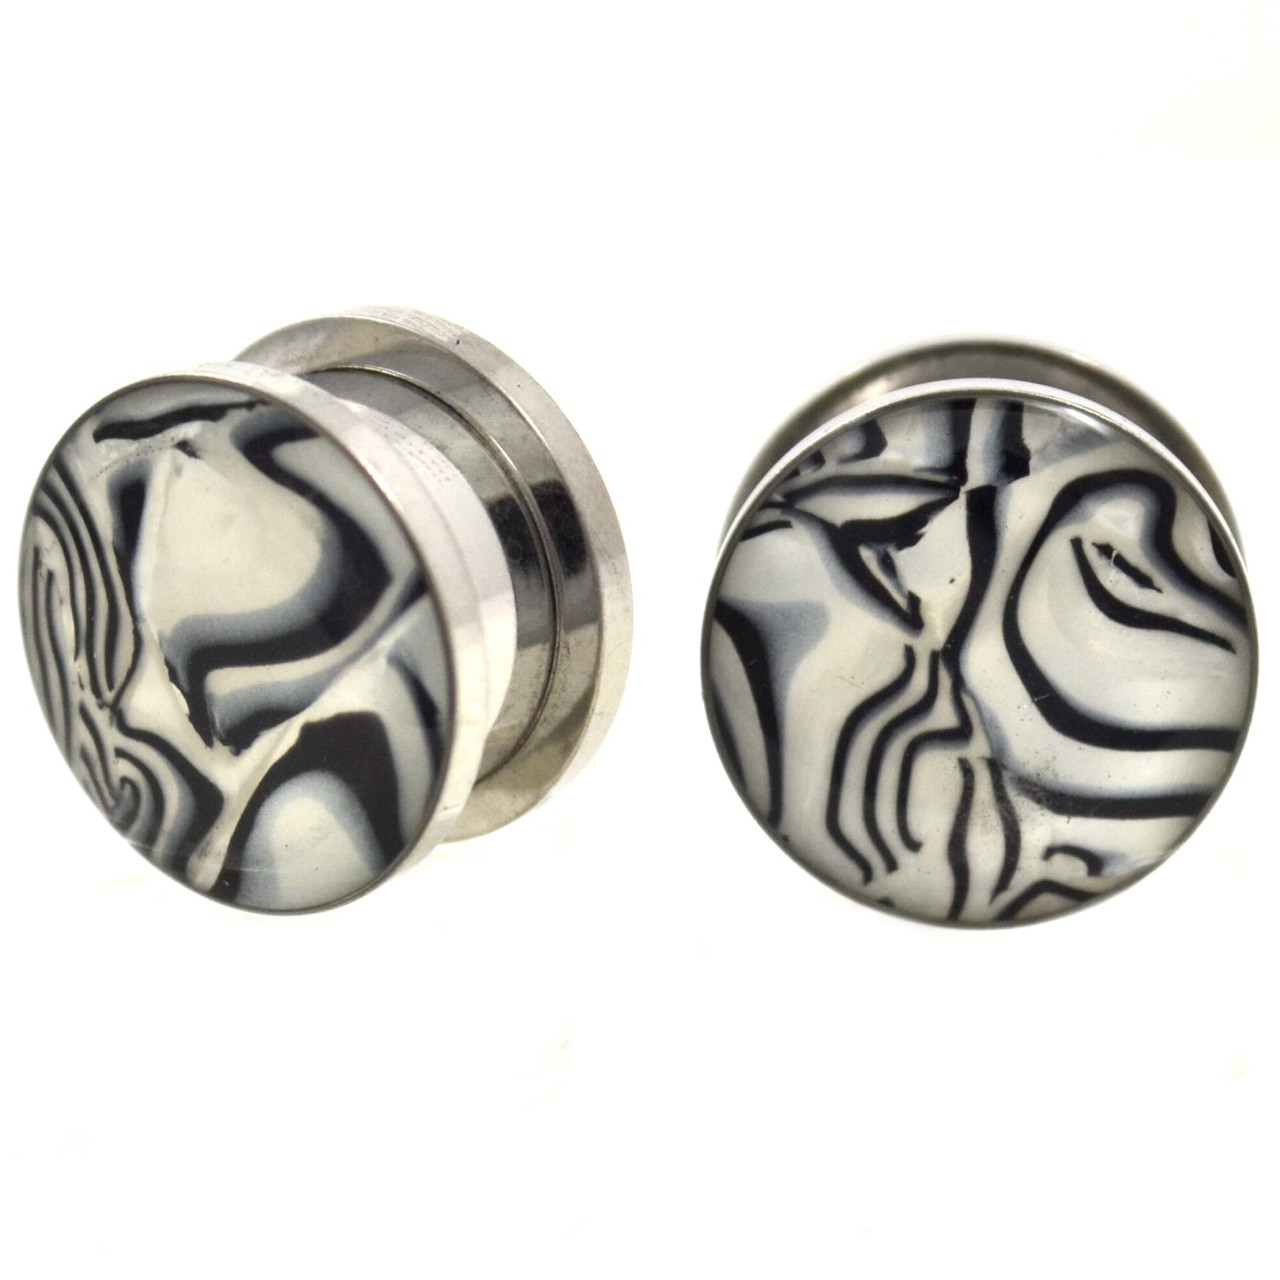 Black Amp White Zebra Striped Shell Steel Plugs 2g 13 16